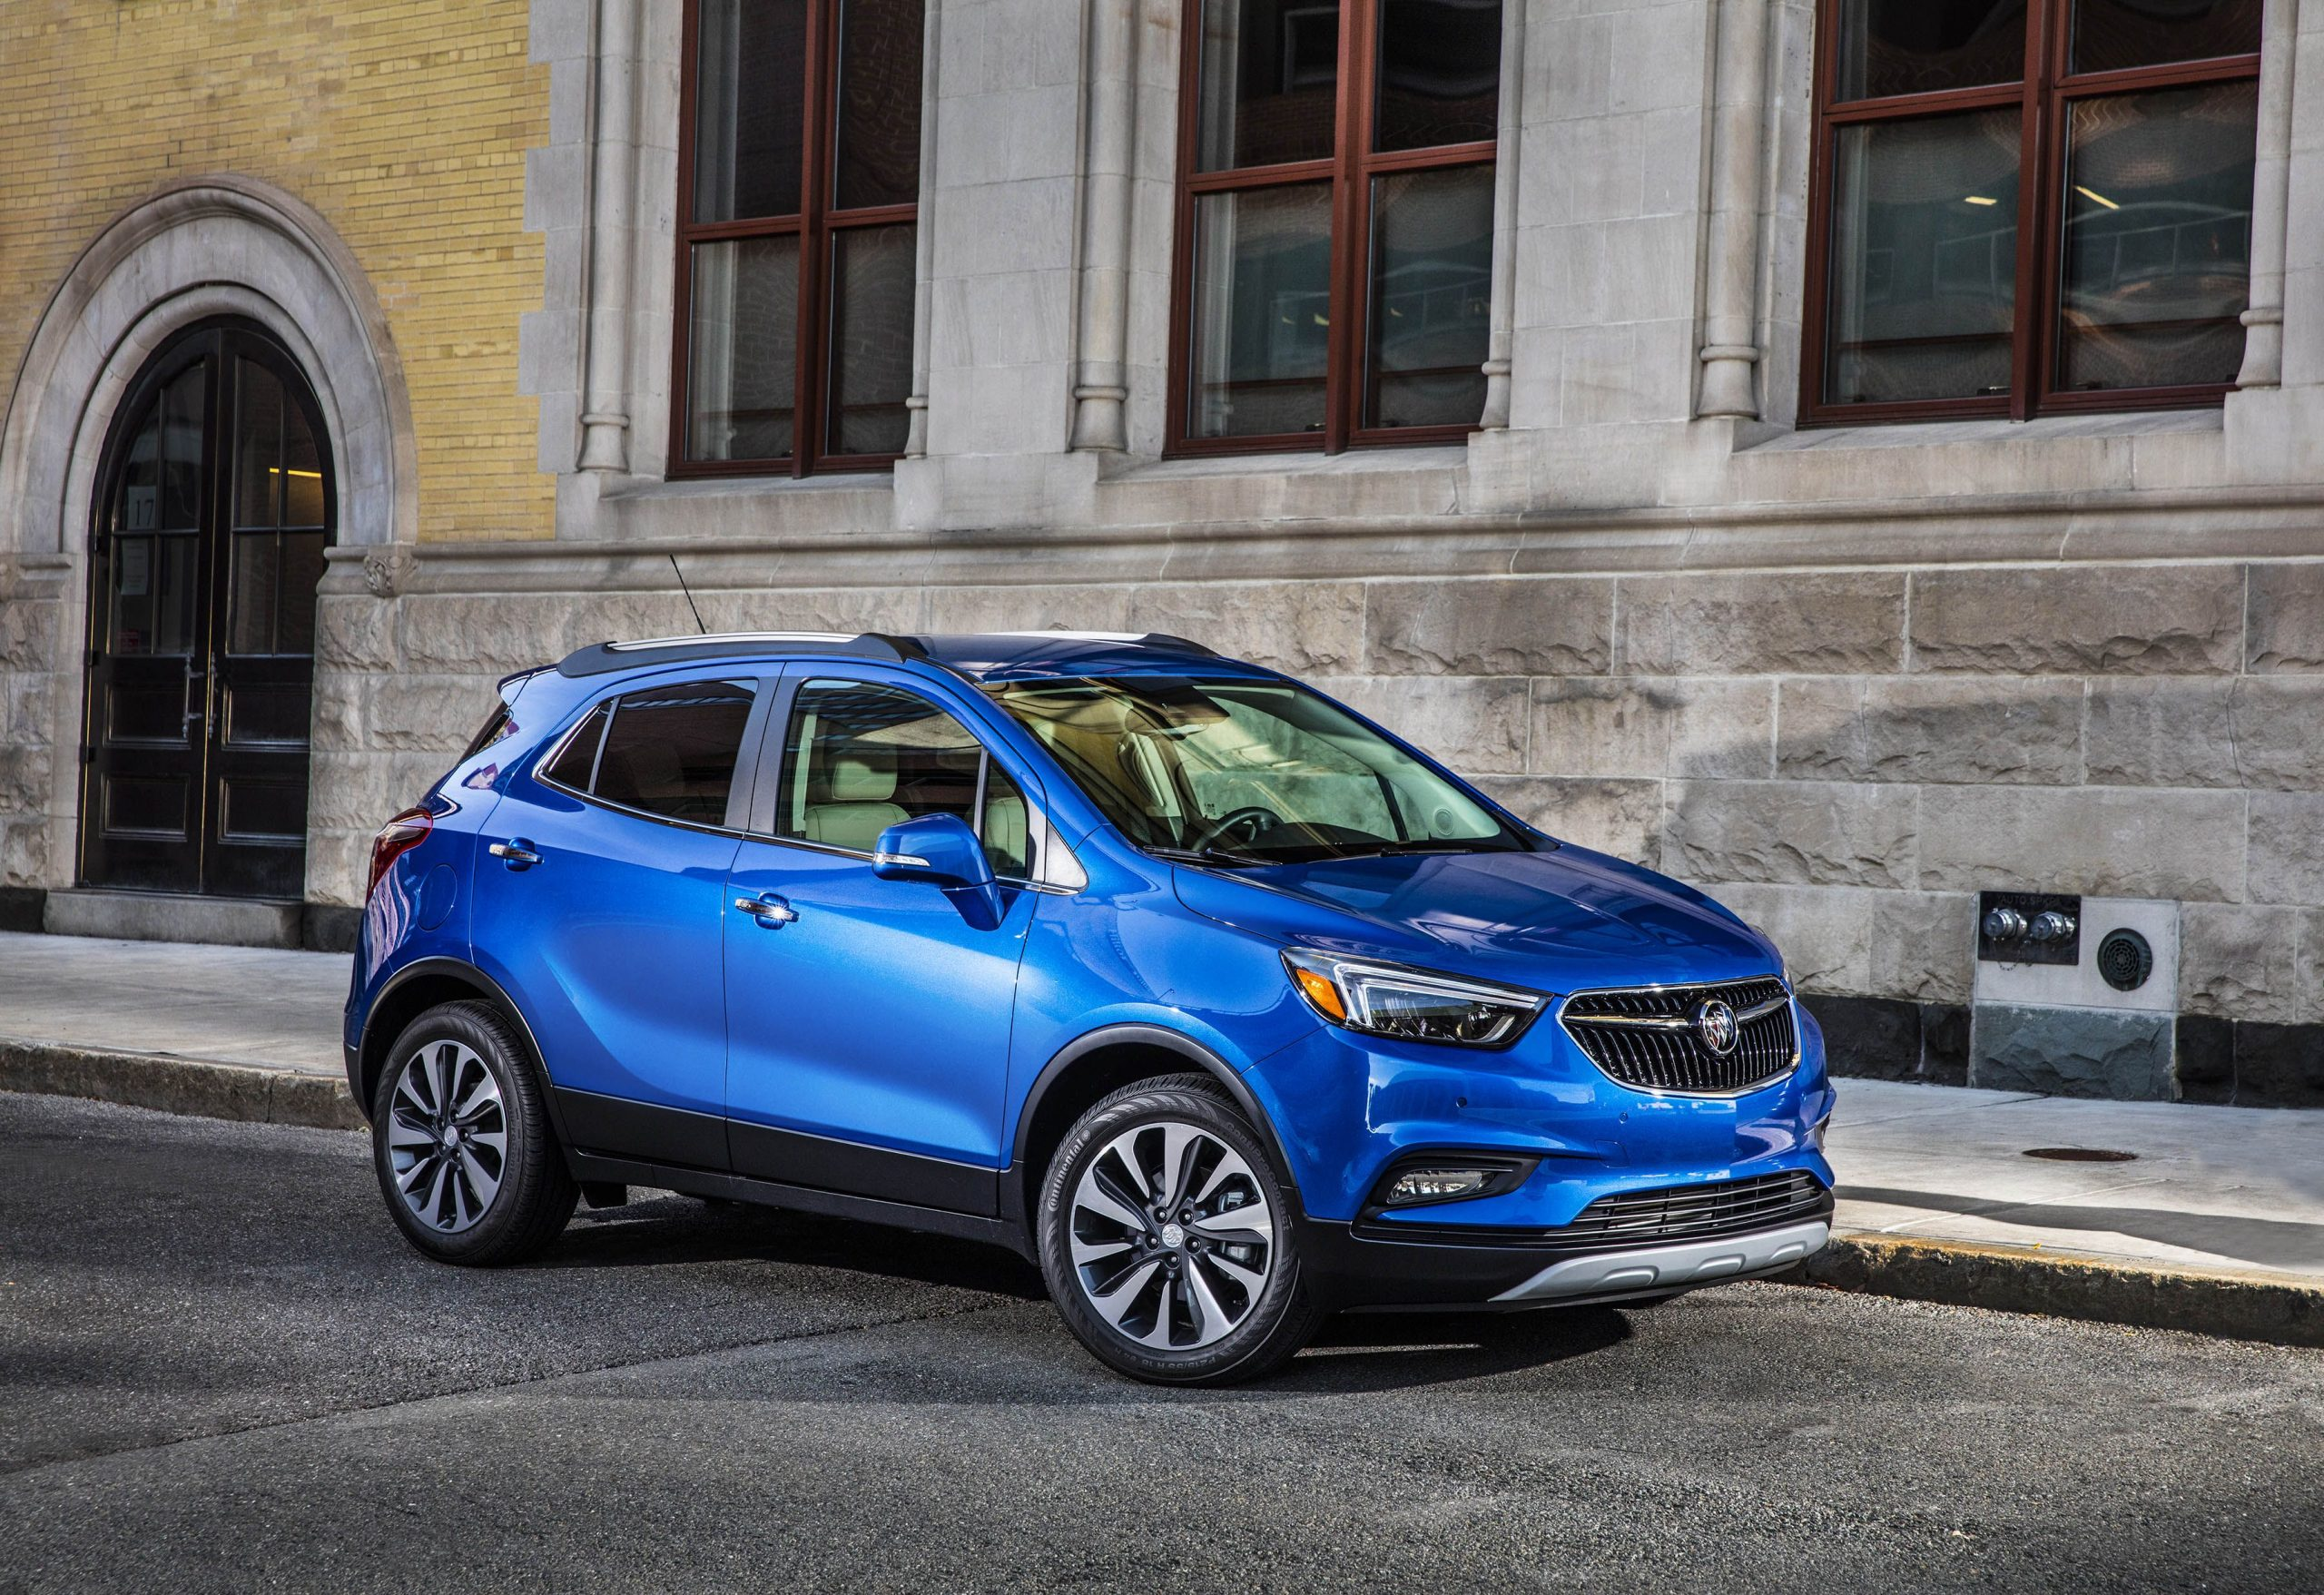 2020 Buick Encore Review, Pricing, And Specs 2022 Buick Encore Essence Reviews, Specs, Configurations